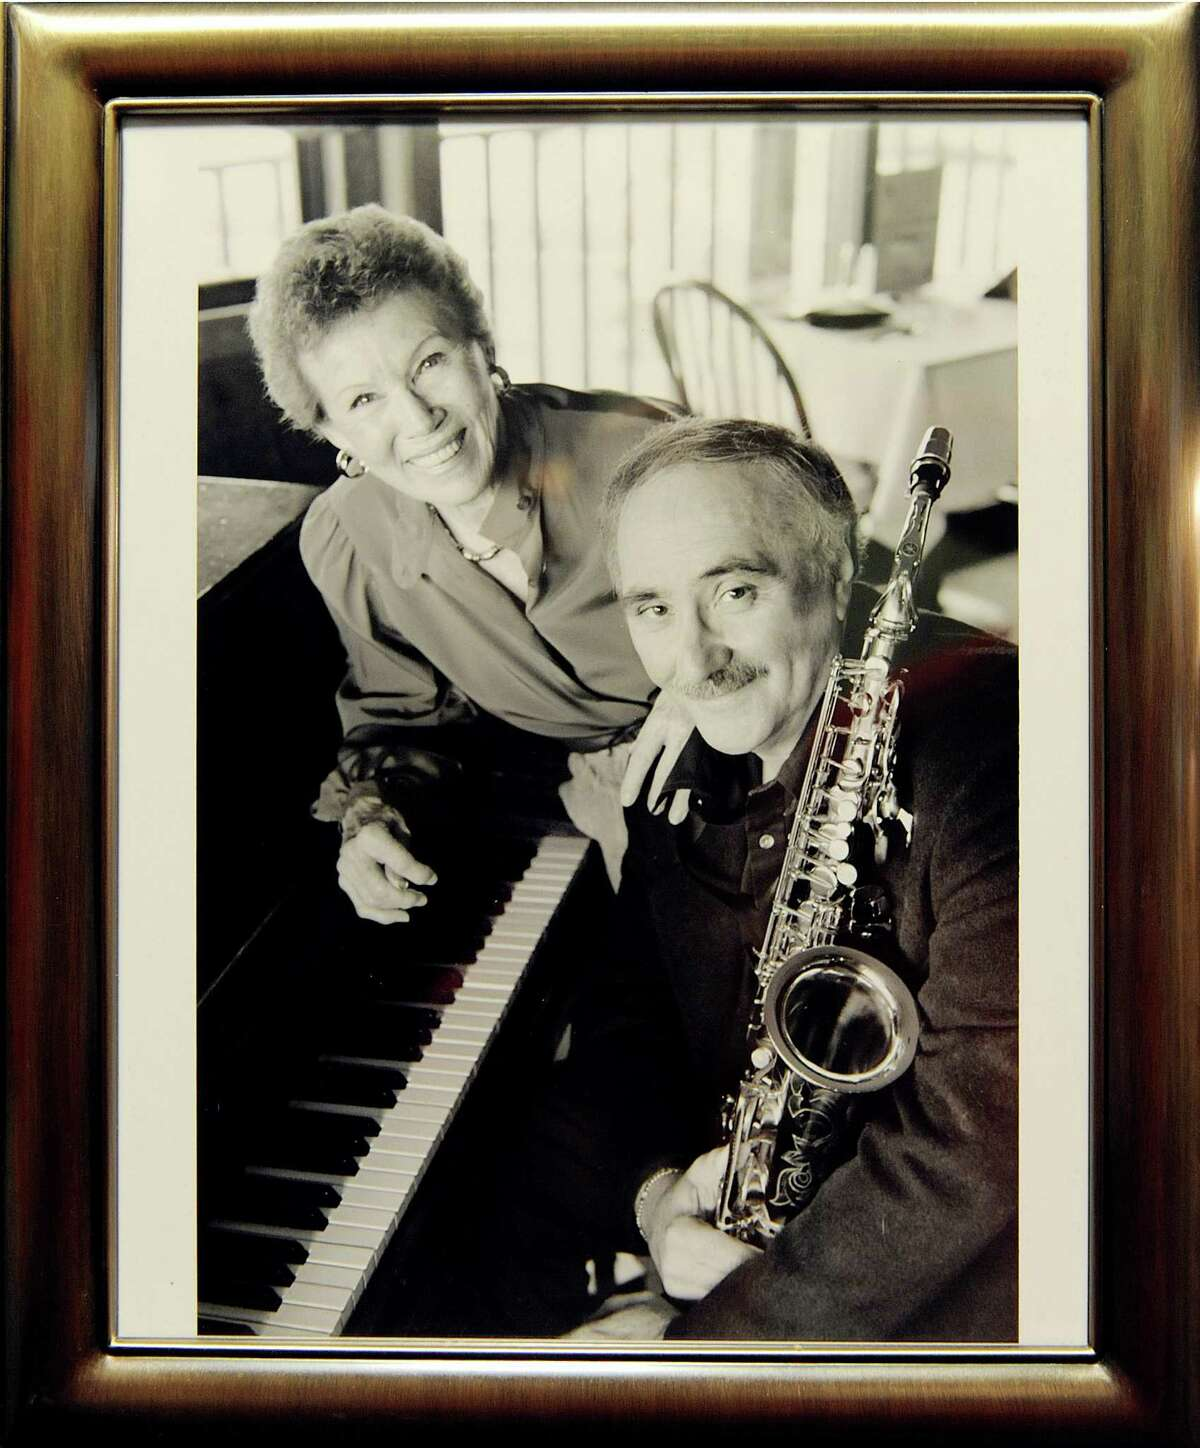 A copy of a photograph of Lee Shaw, left, with saxophone player Nick Brignola on Thursday, Nov. 8, 2012, at Shaw's home in Colonie, N.Y. (Cindy Schultz / Times Union)